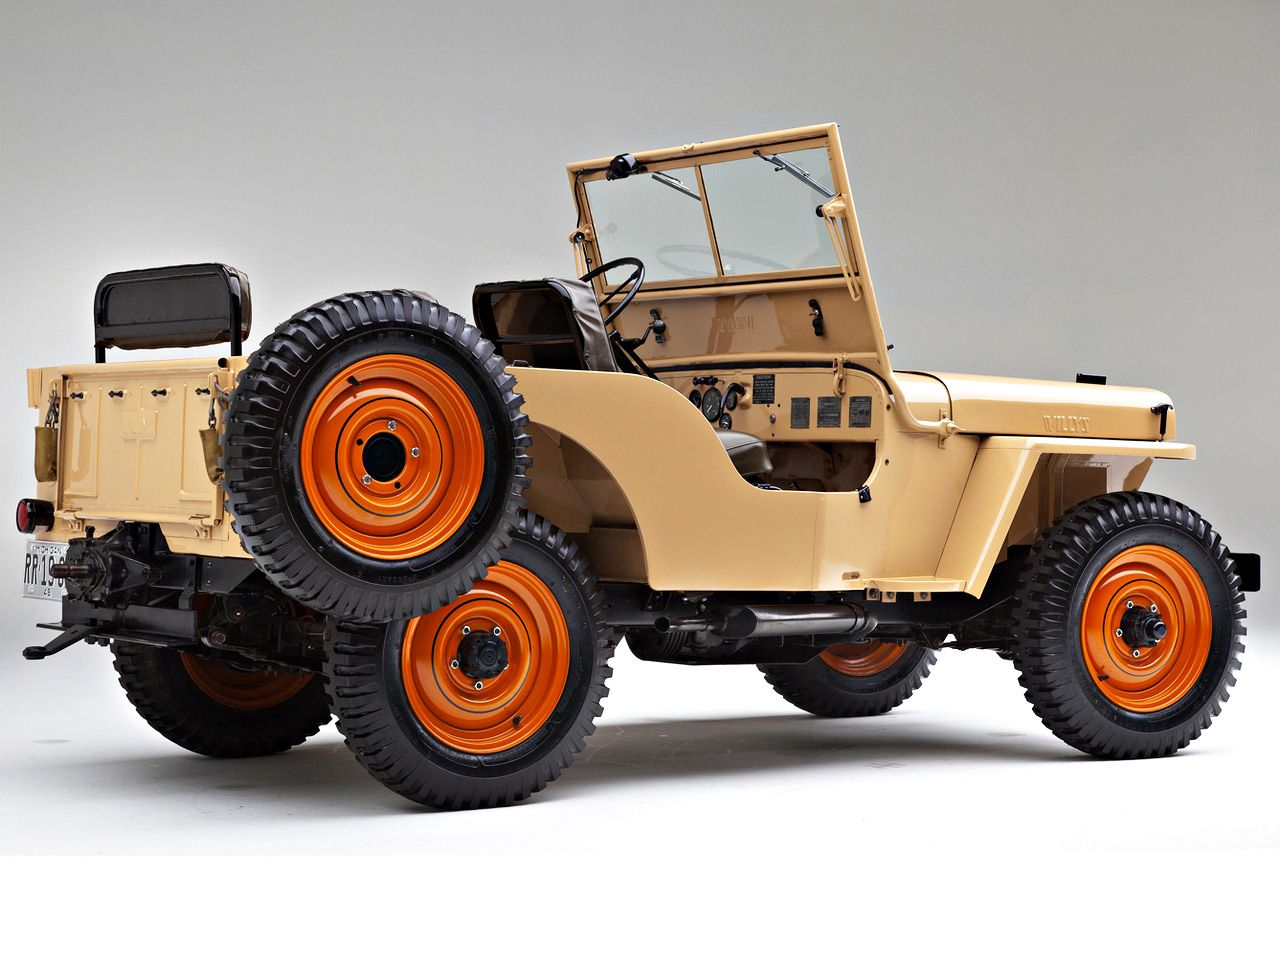 1946 Willys Overland Cj 2a In Harvest Tan With Sunset Red Wheels